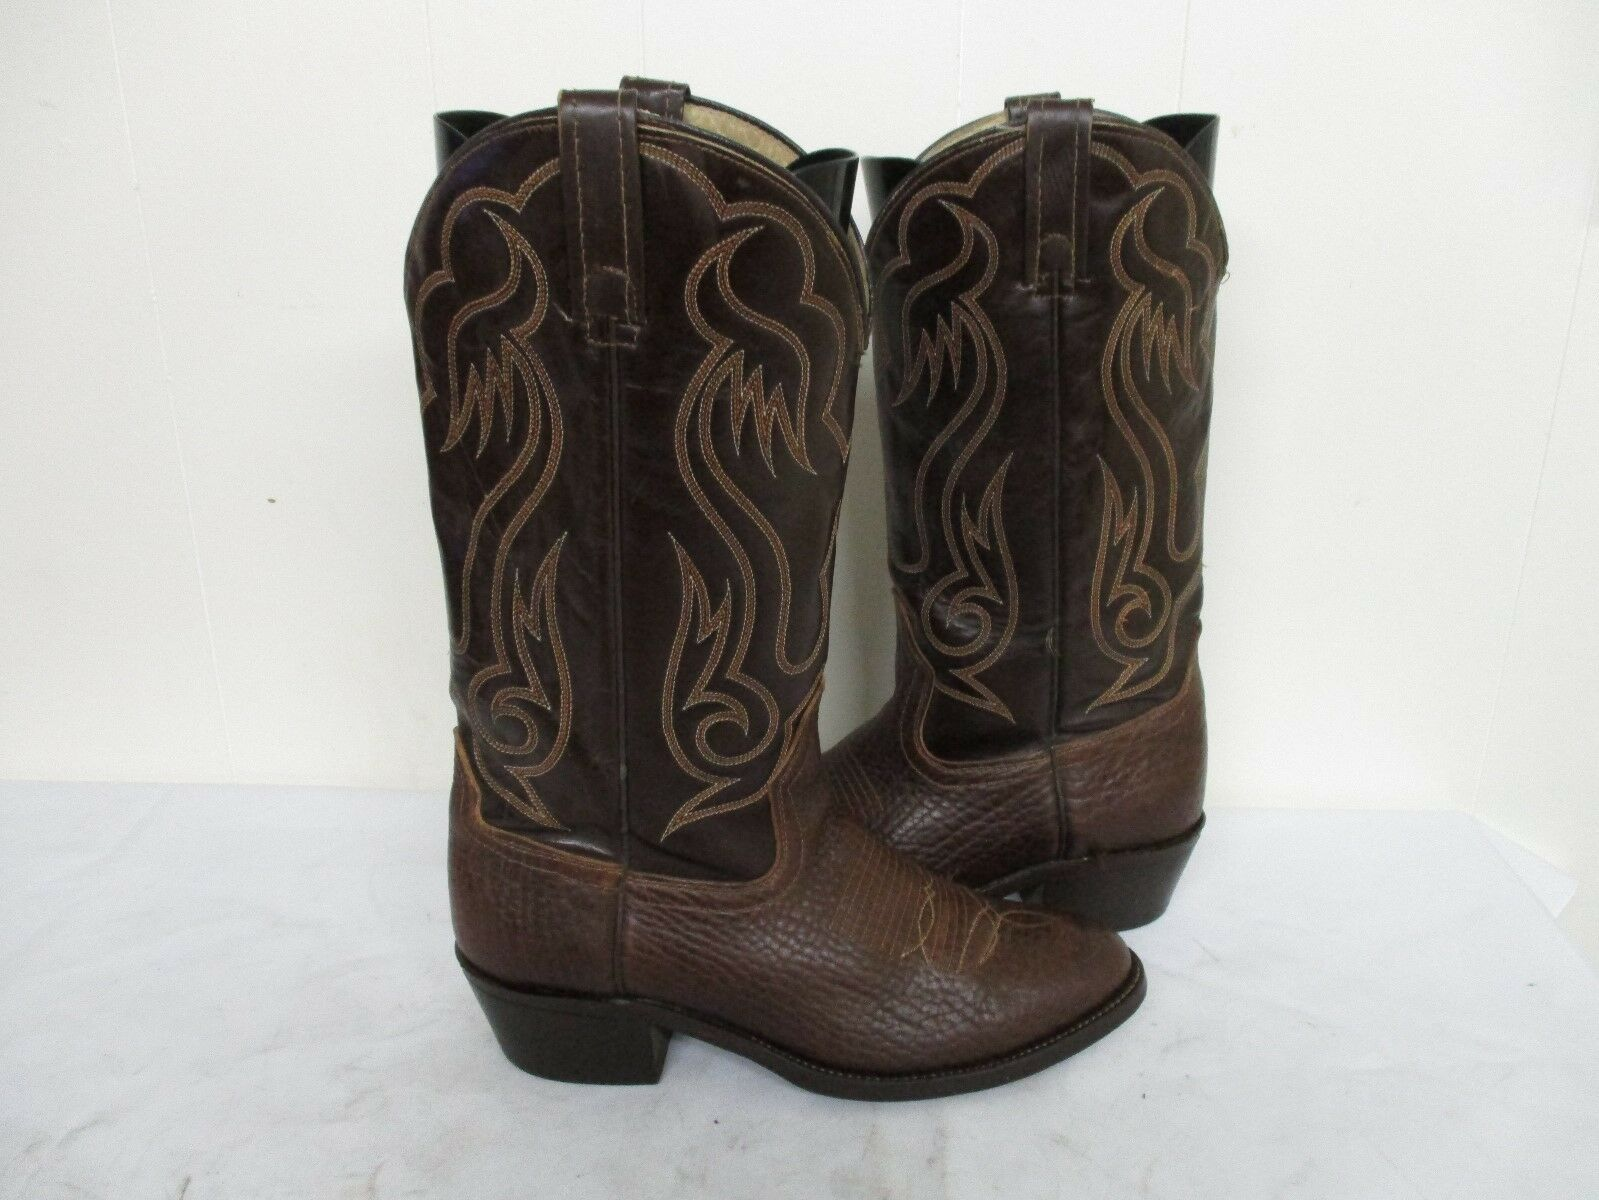 Acme Brown Leather Cowboy Boots Leather Soles Mens Size 8.5 D Style 6098 USA